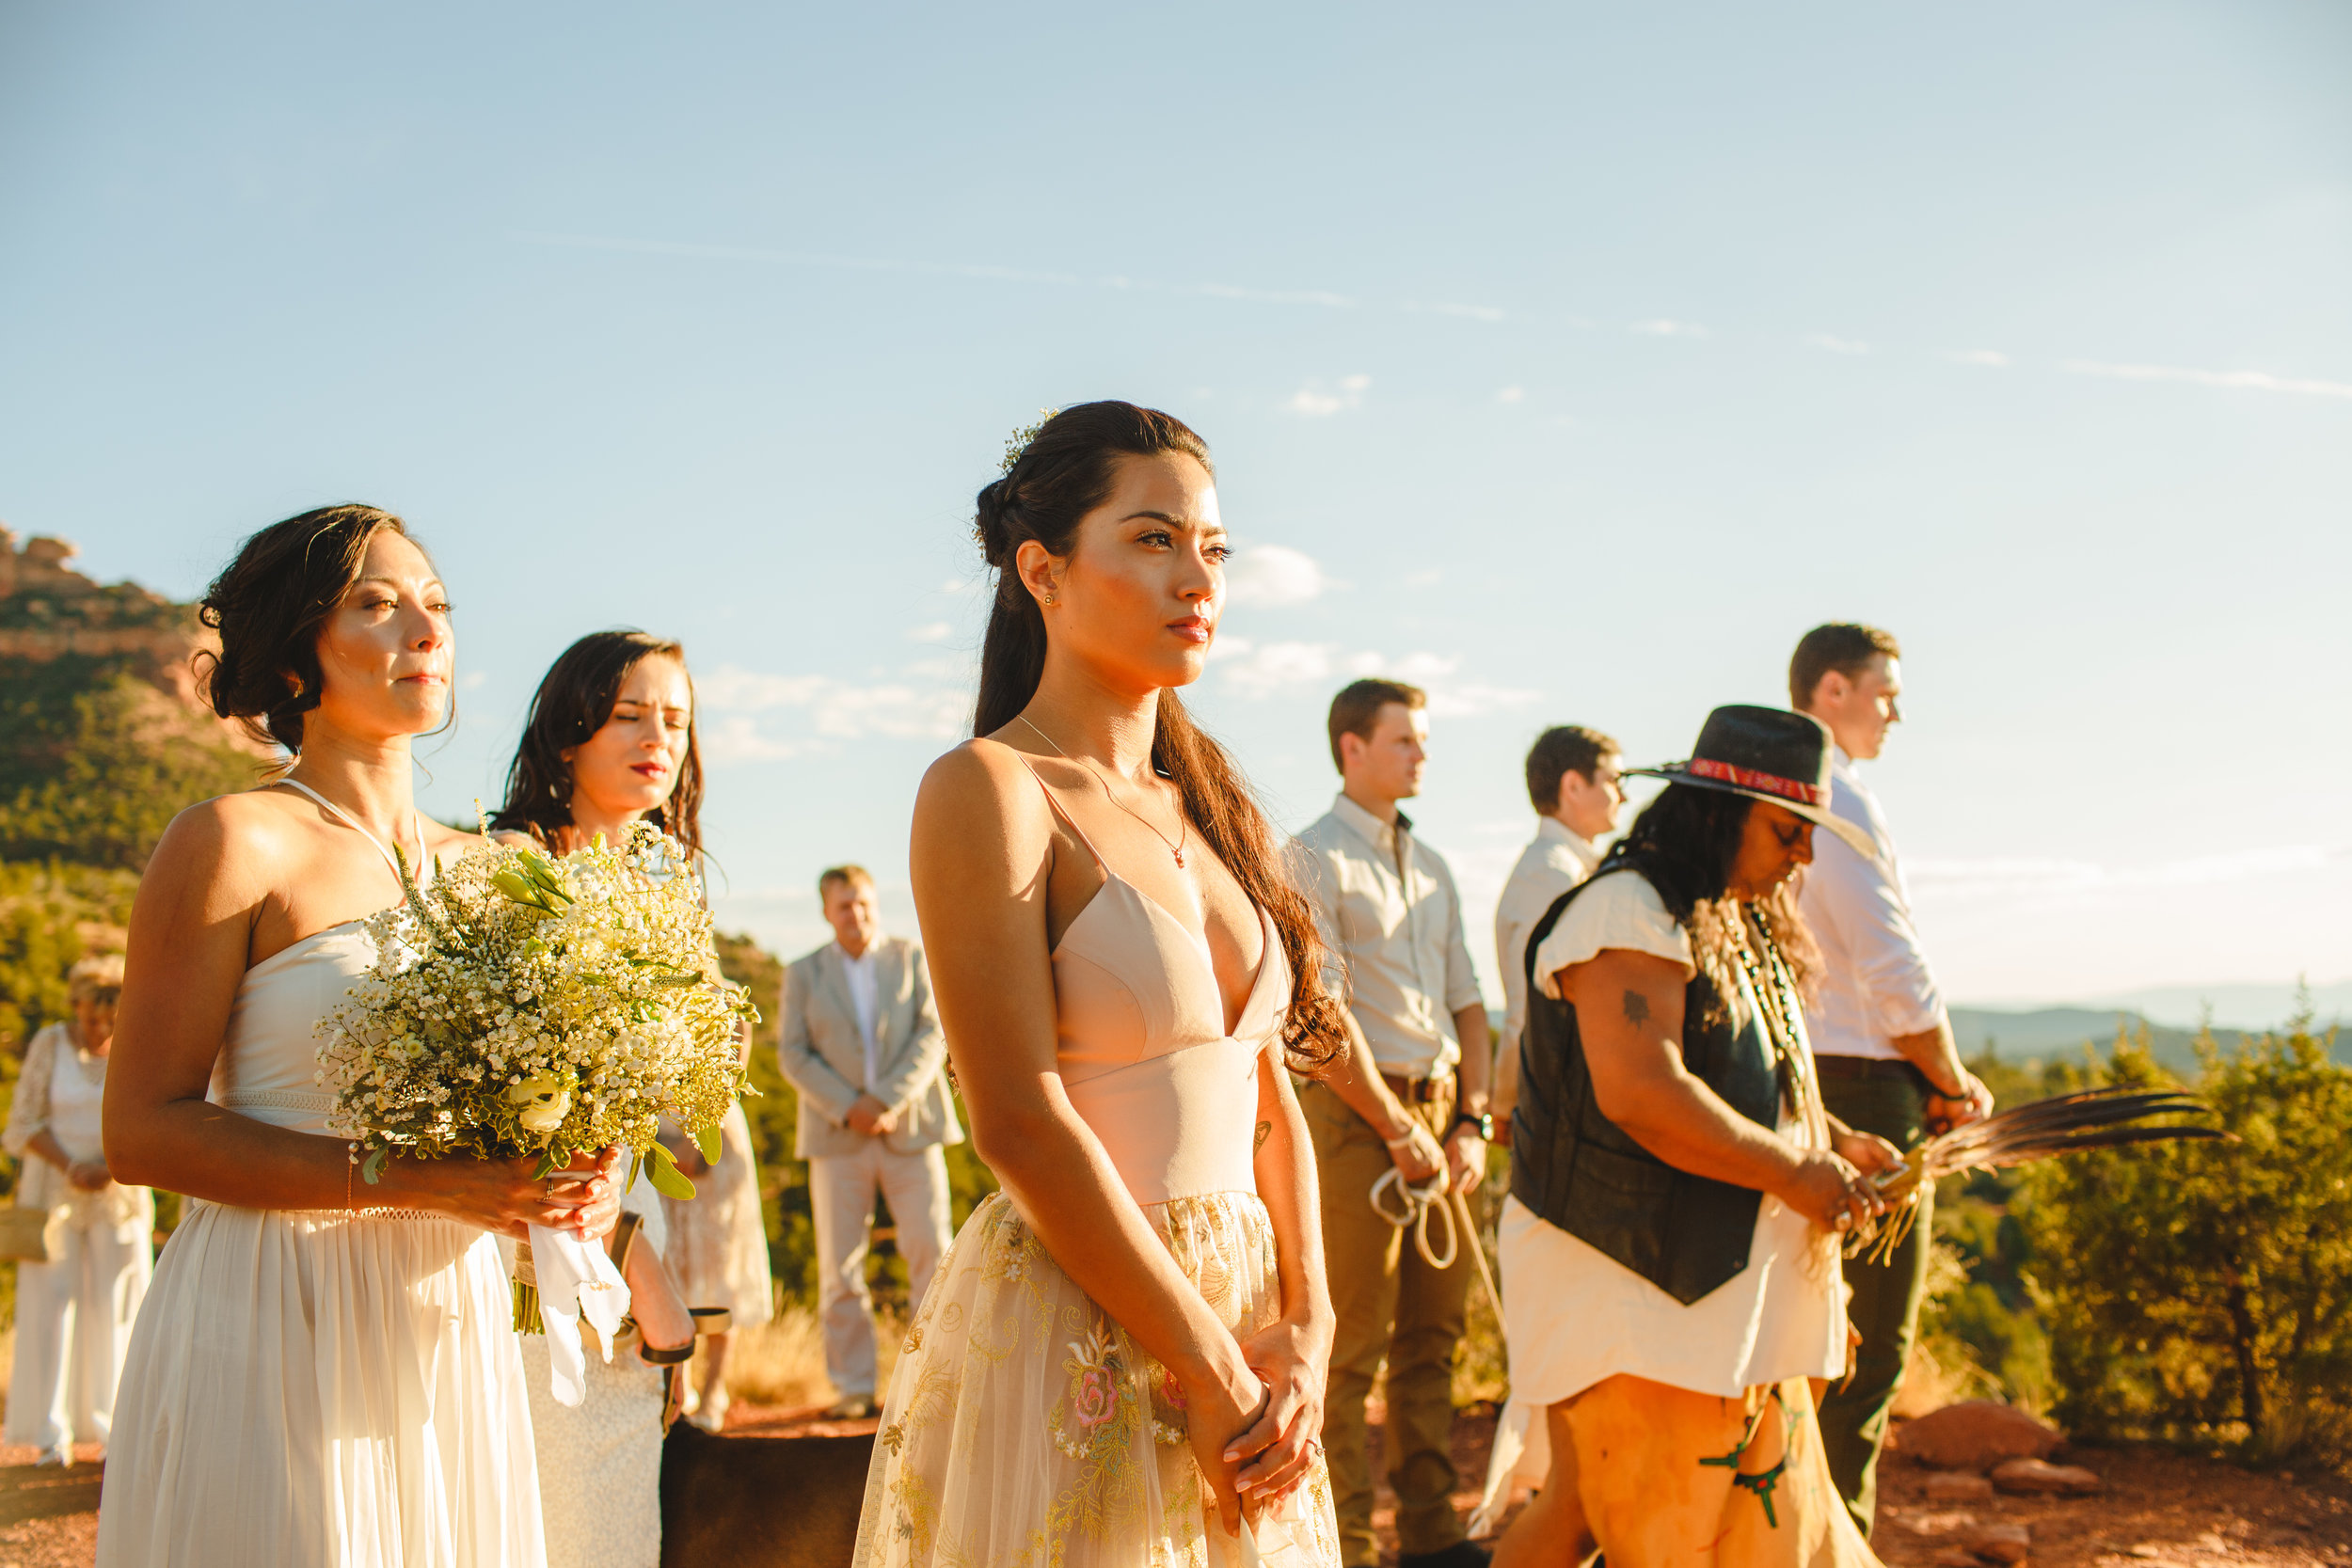 Native American ceremonies are becoming more popular on the red rock elopement ceremonies.